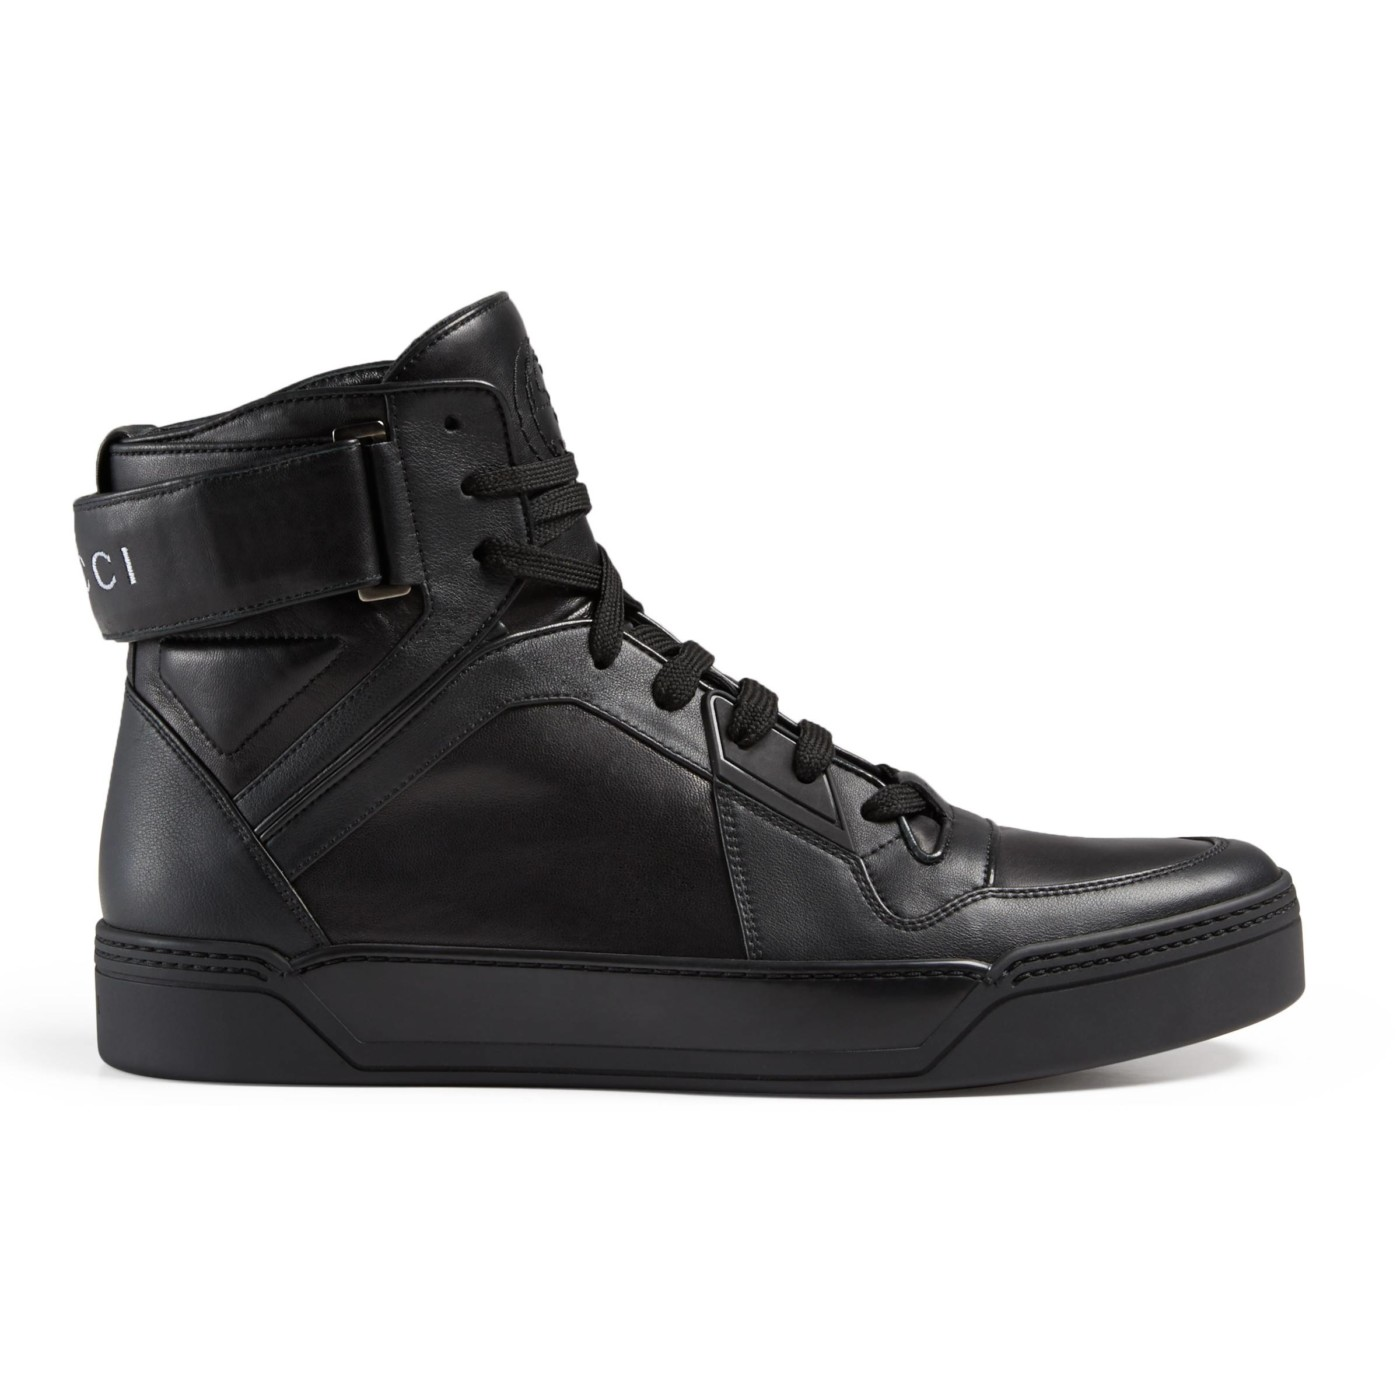 Gucci Men\u0027s Black GG Soft Leather High Top Sneakers Shoes